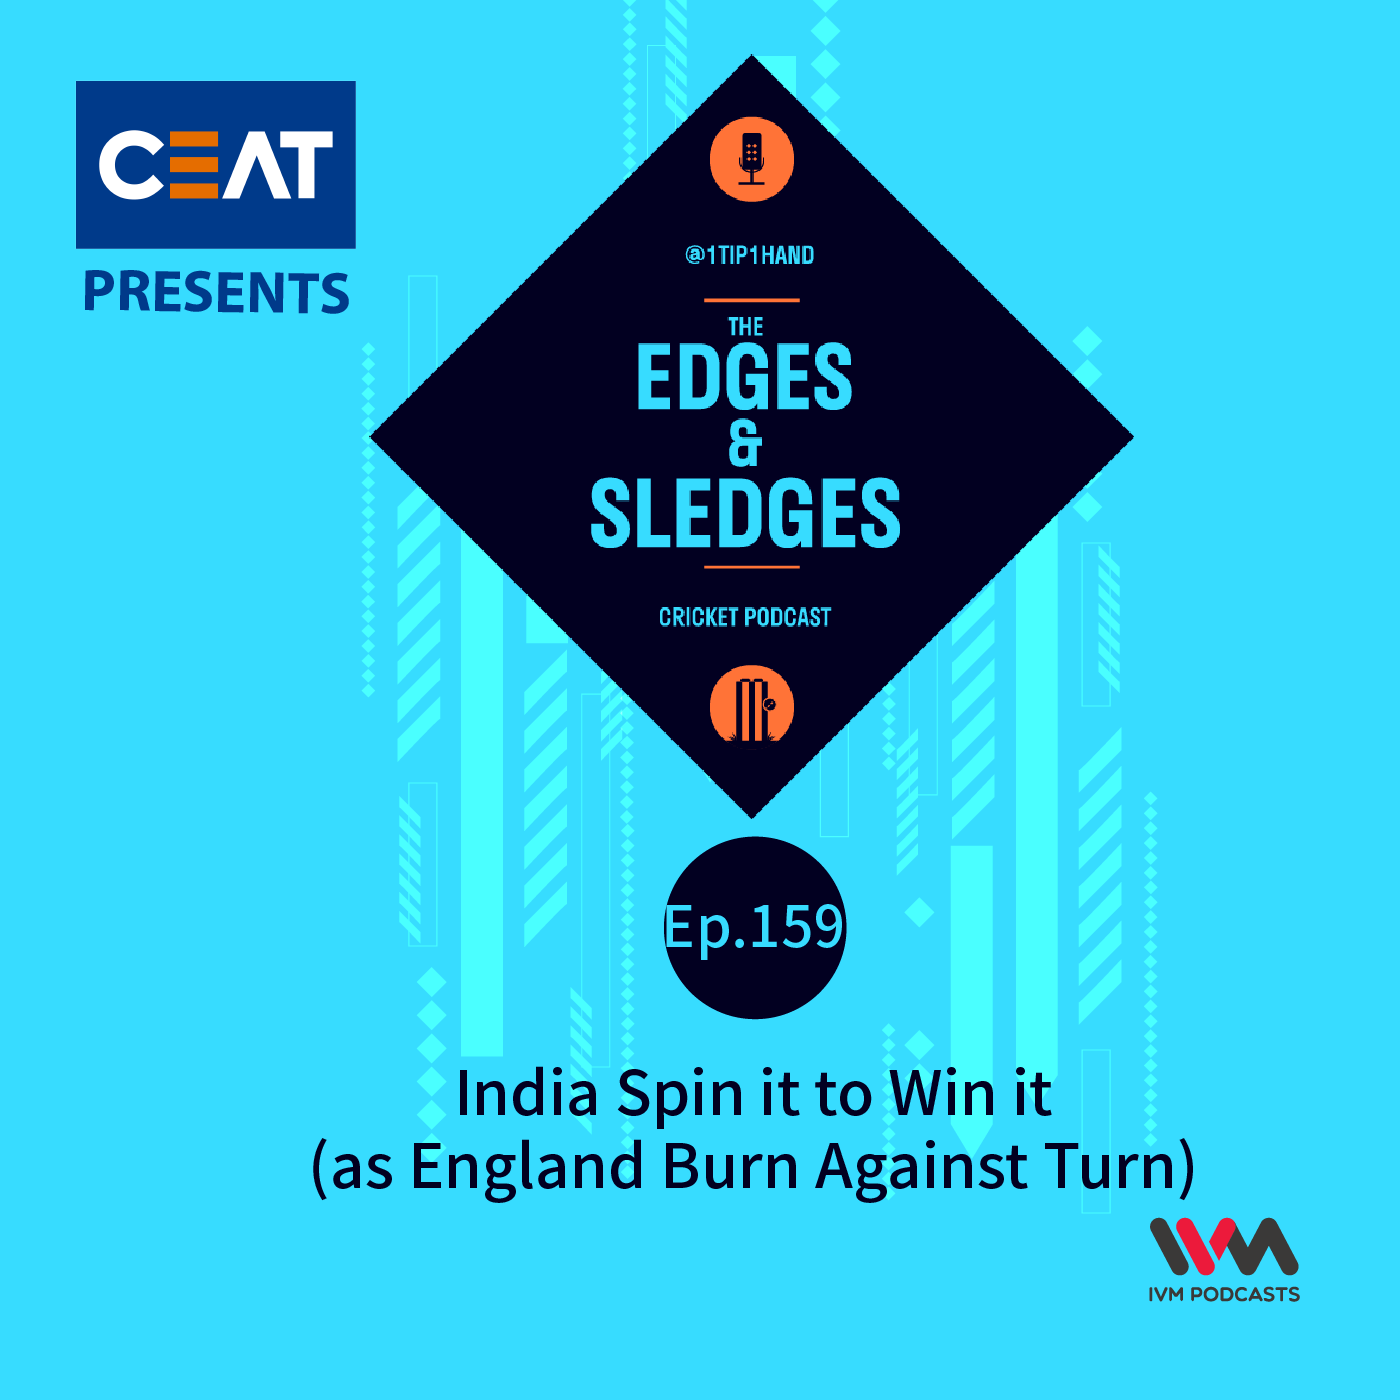 Ep. 159: India Spin it to Win it (as England Burn Against Turn)